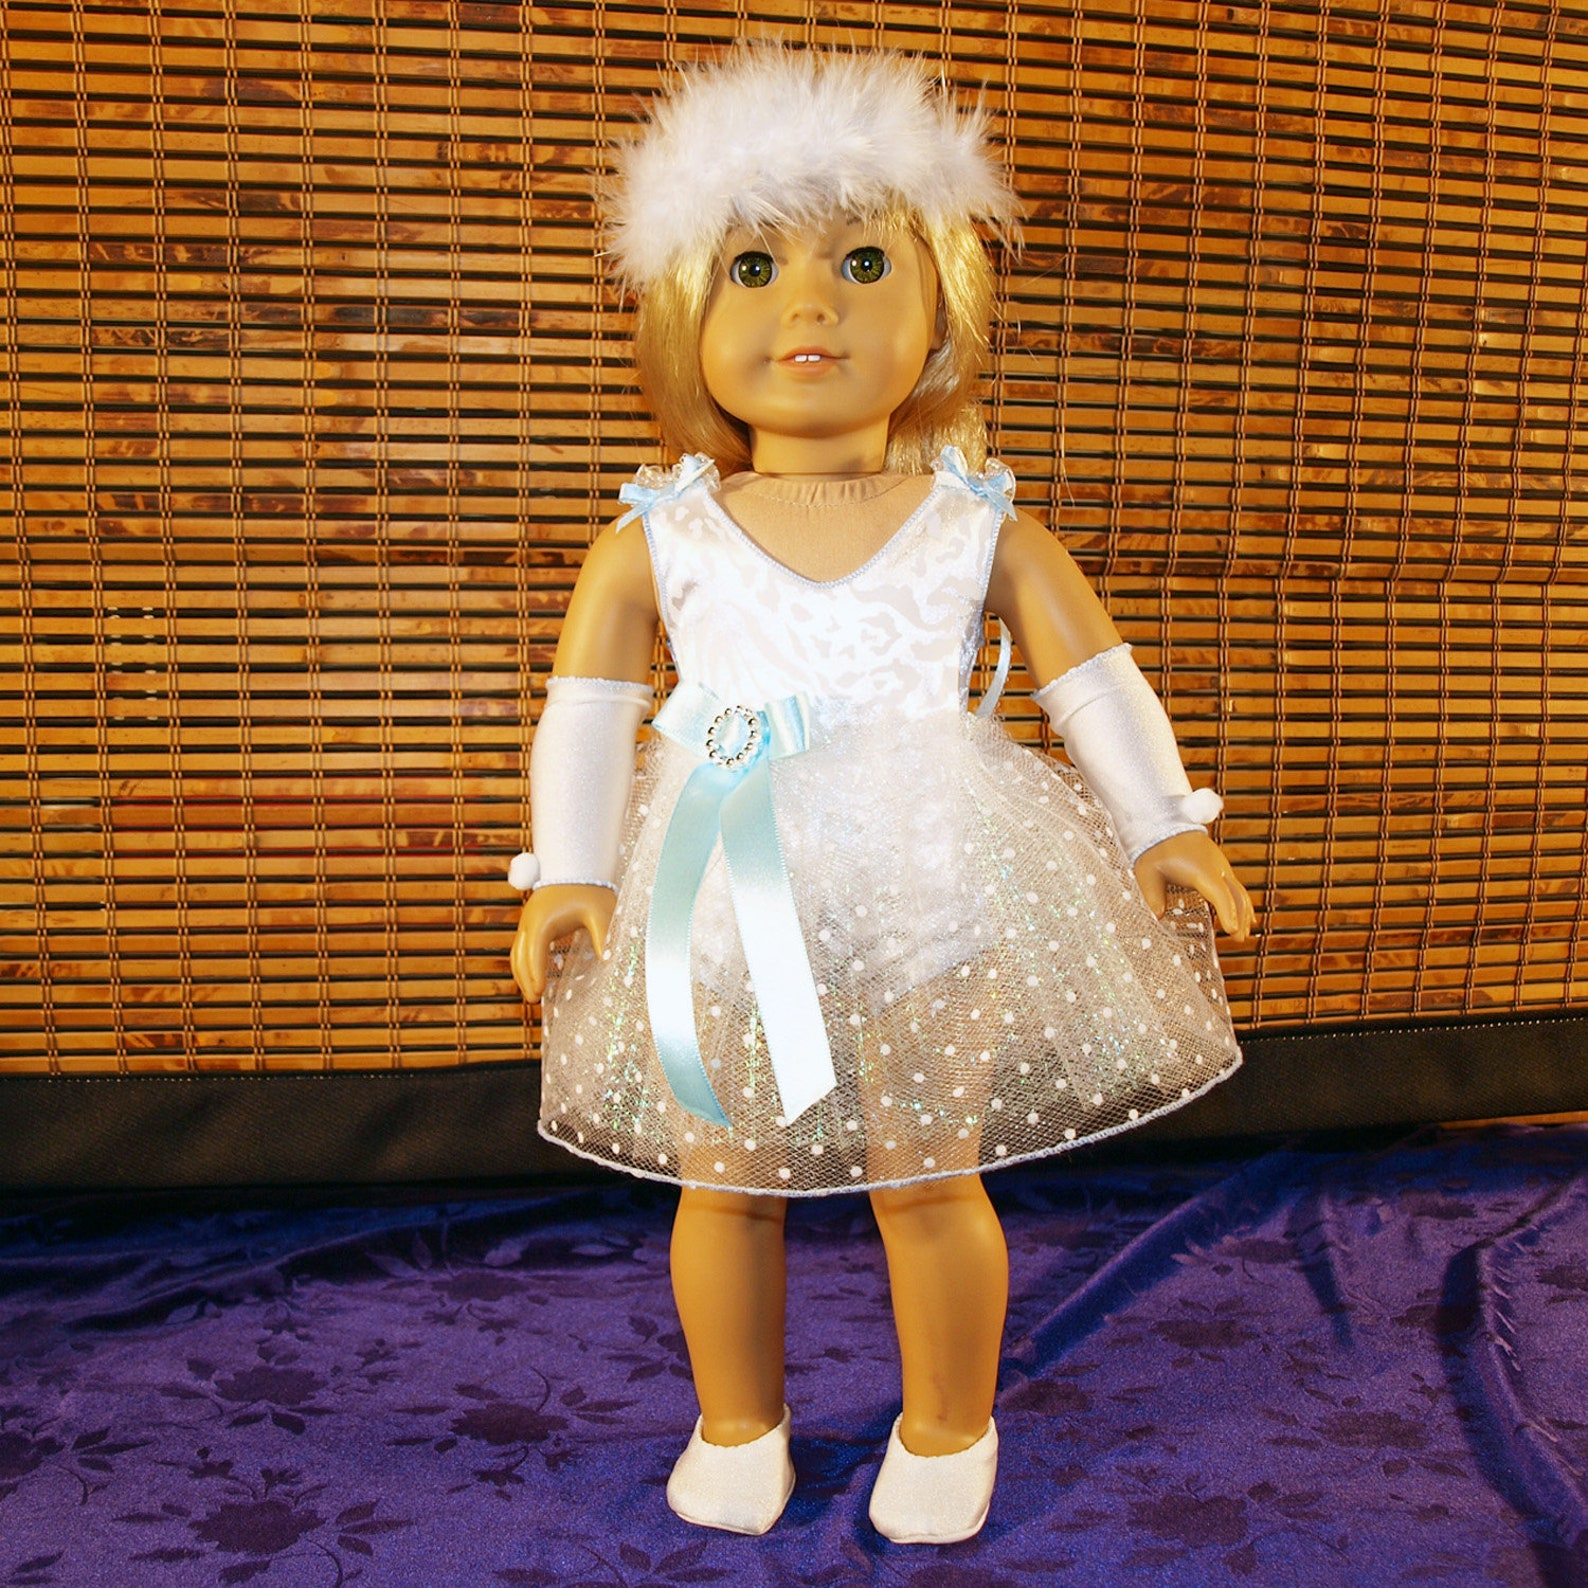 dance costume for ballet or lyrical in white, with blue bow and feather headband and shoes, modeled on american girl doll